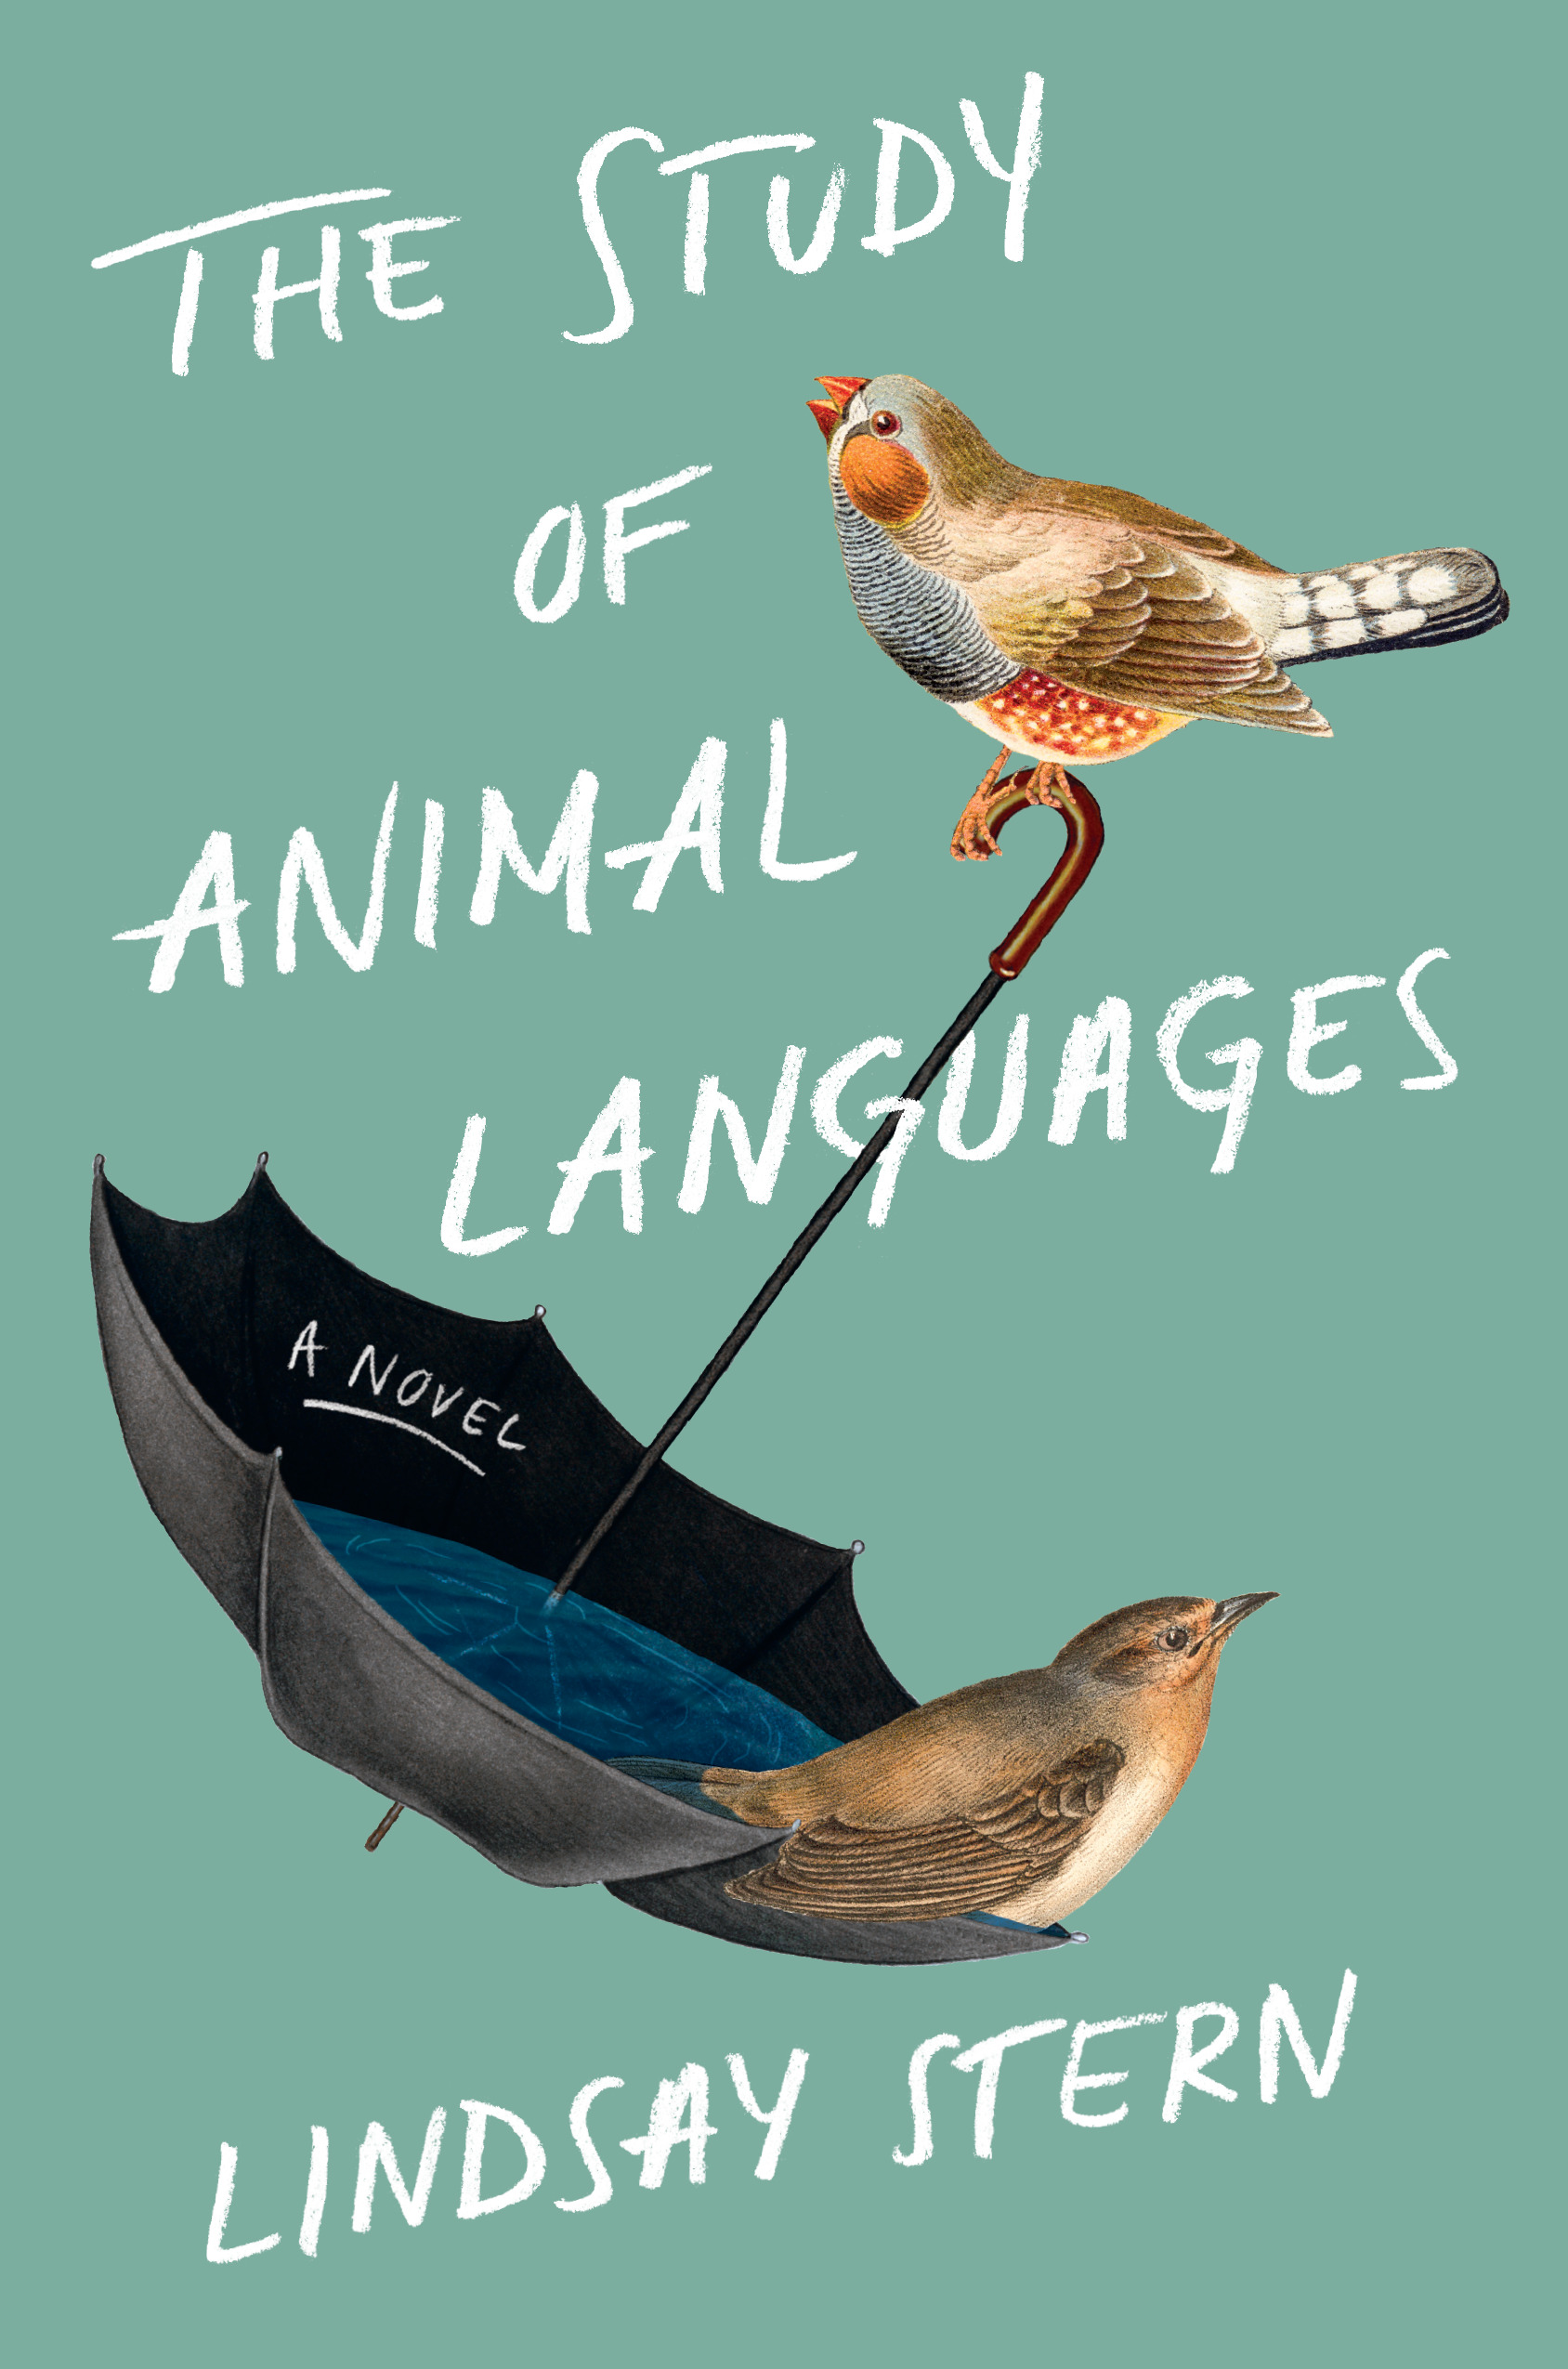 From The Study of Animal Languages